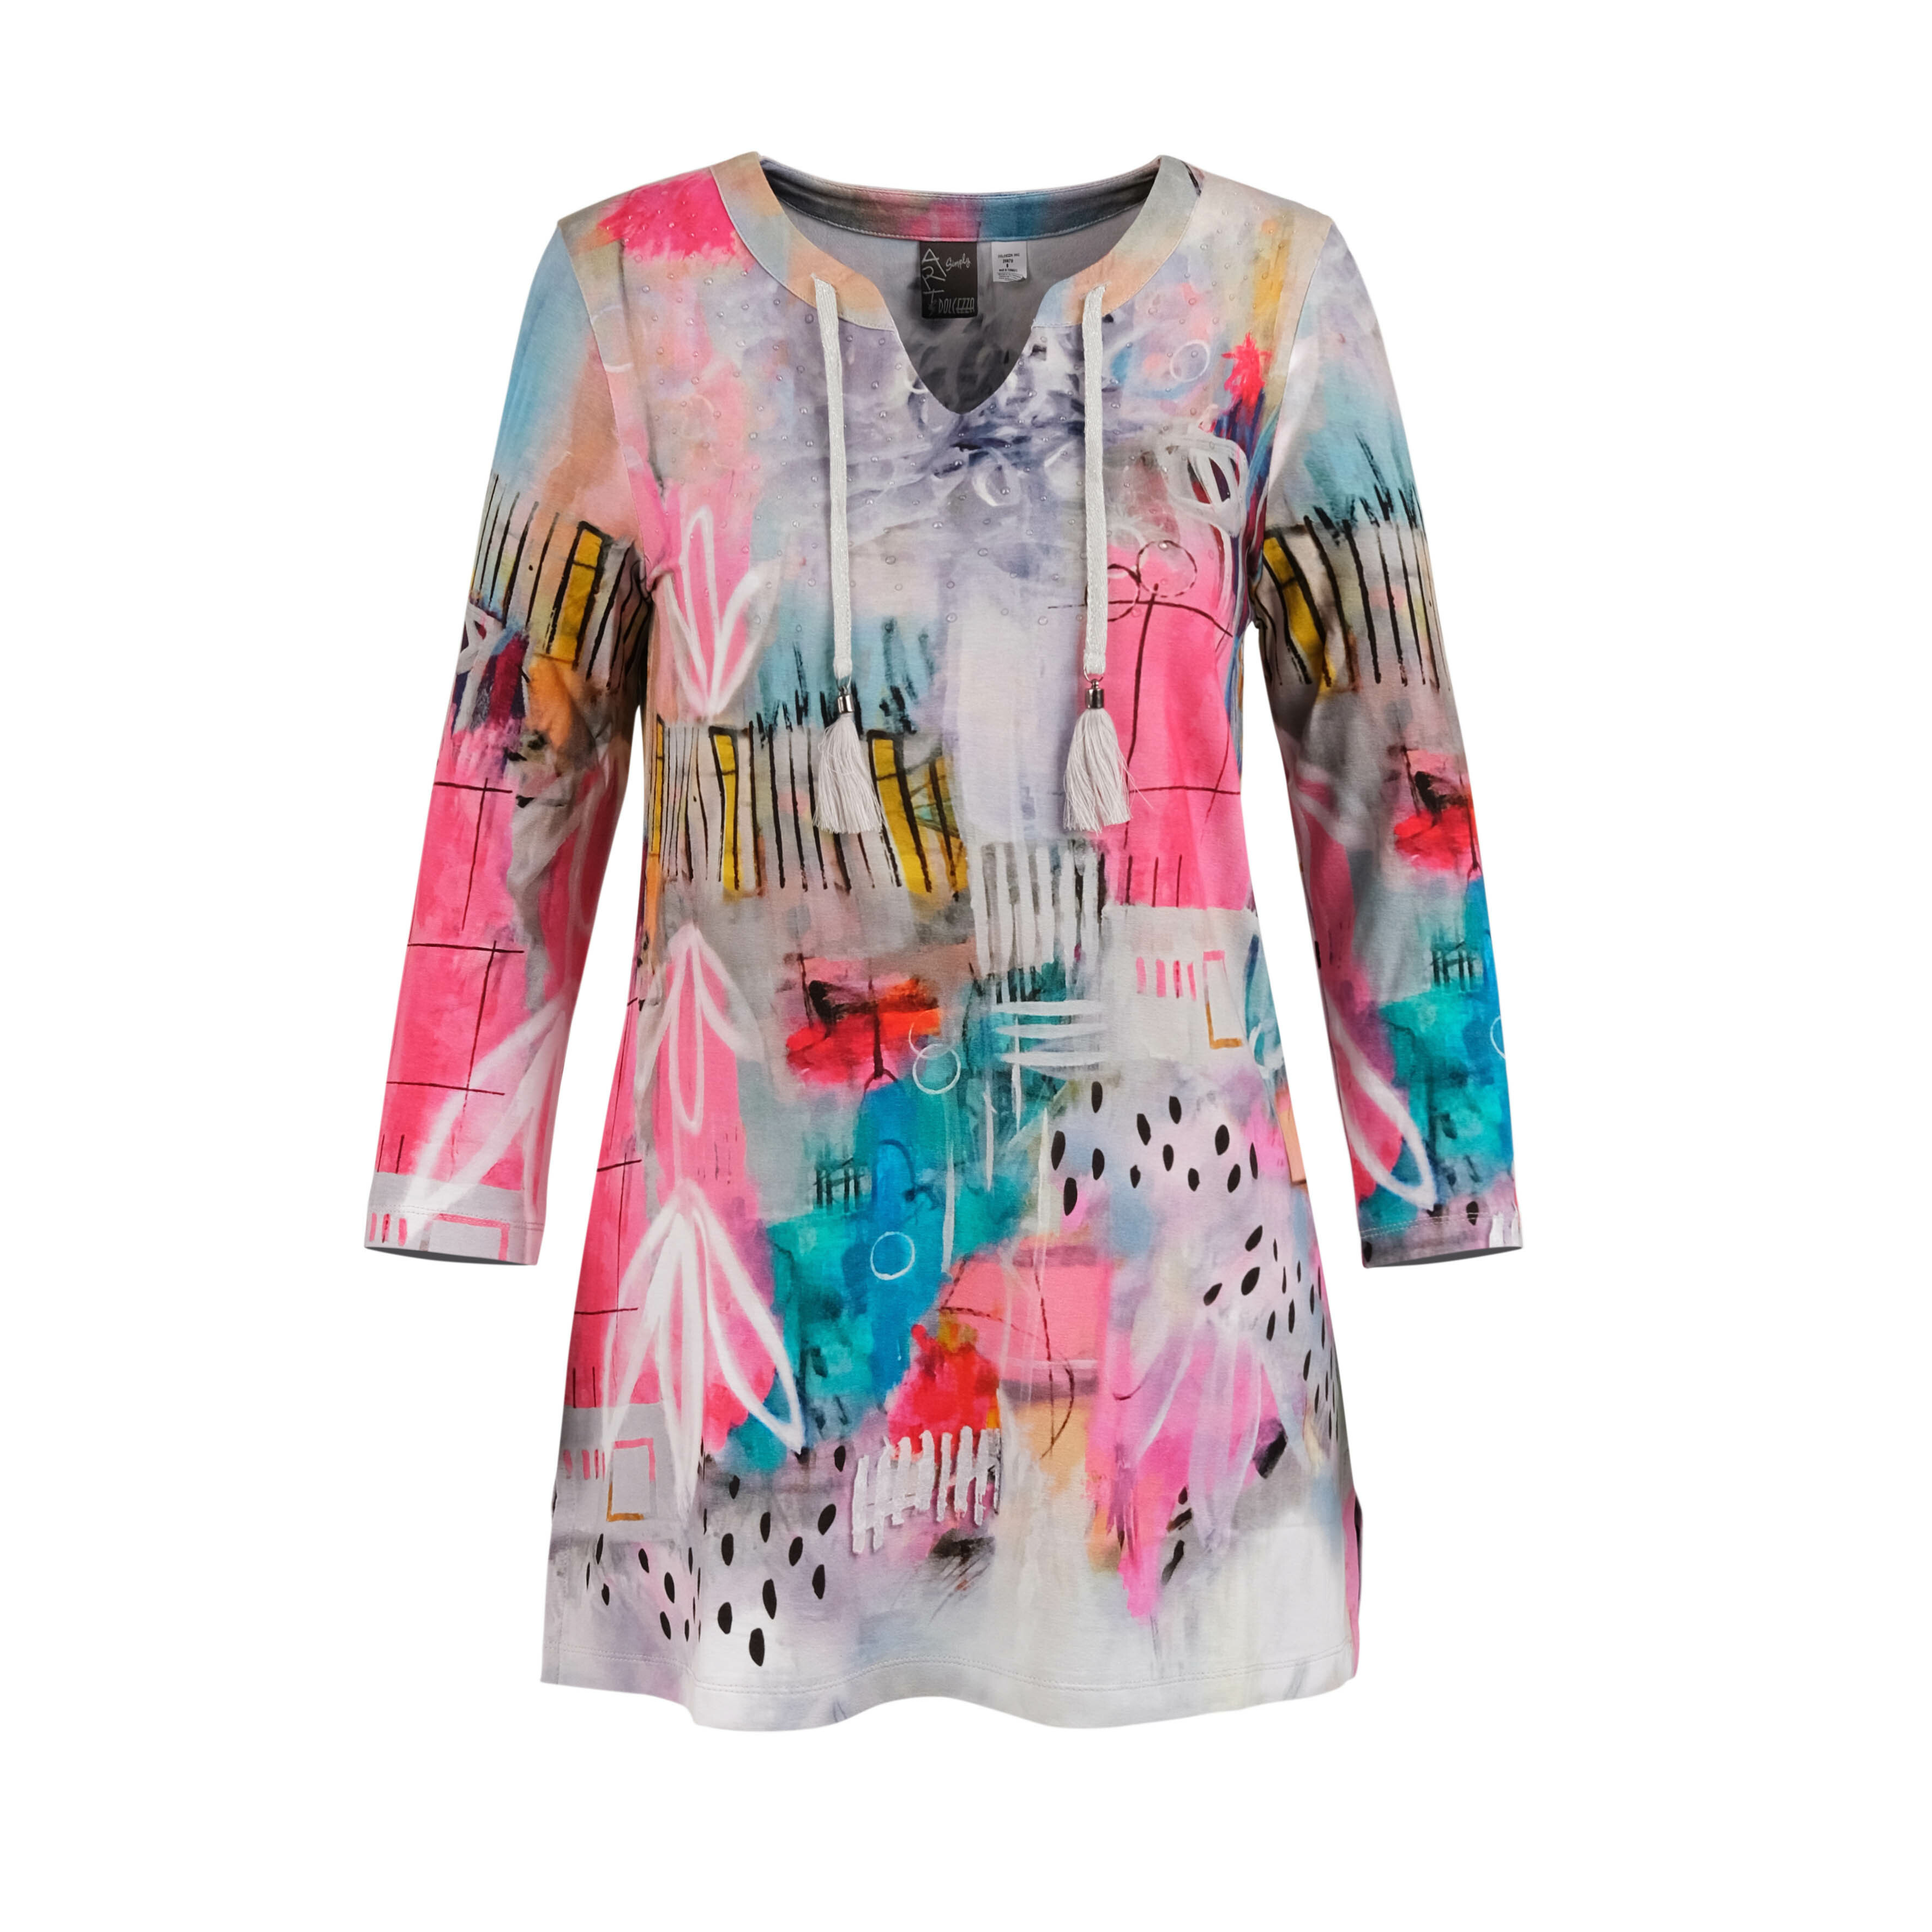 Simply Art Dolcezza: Receive The Best Things In Life Abstract Art Tunic